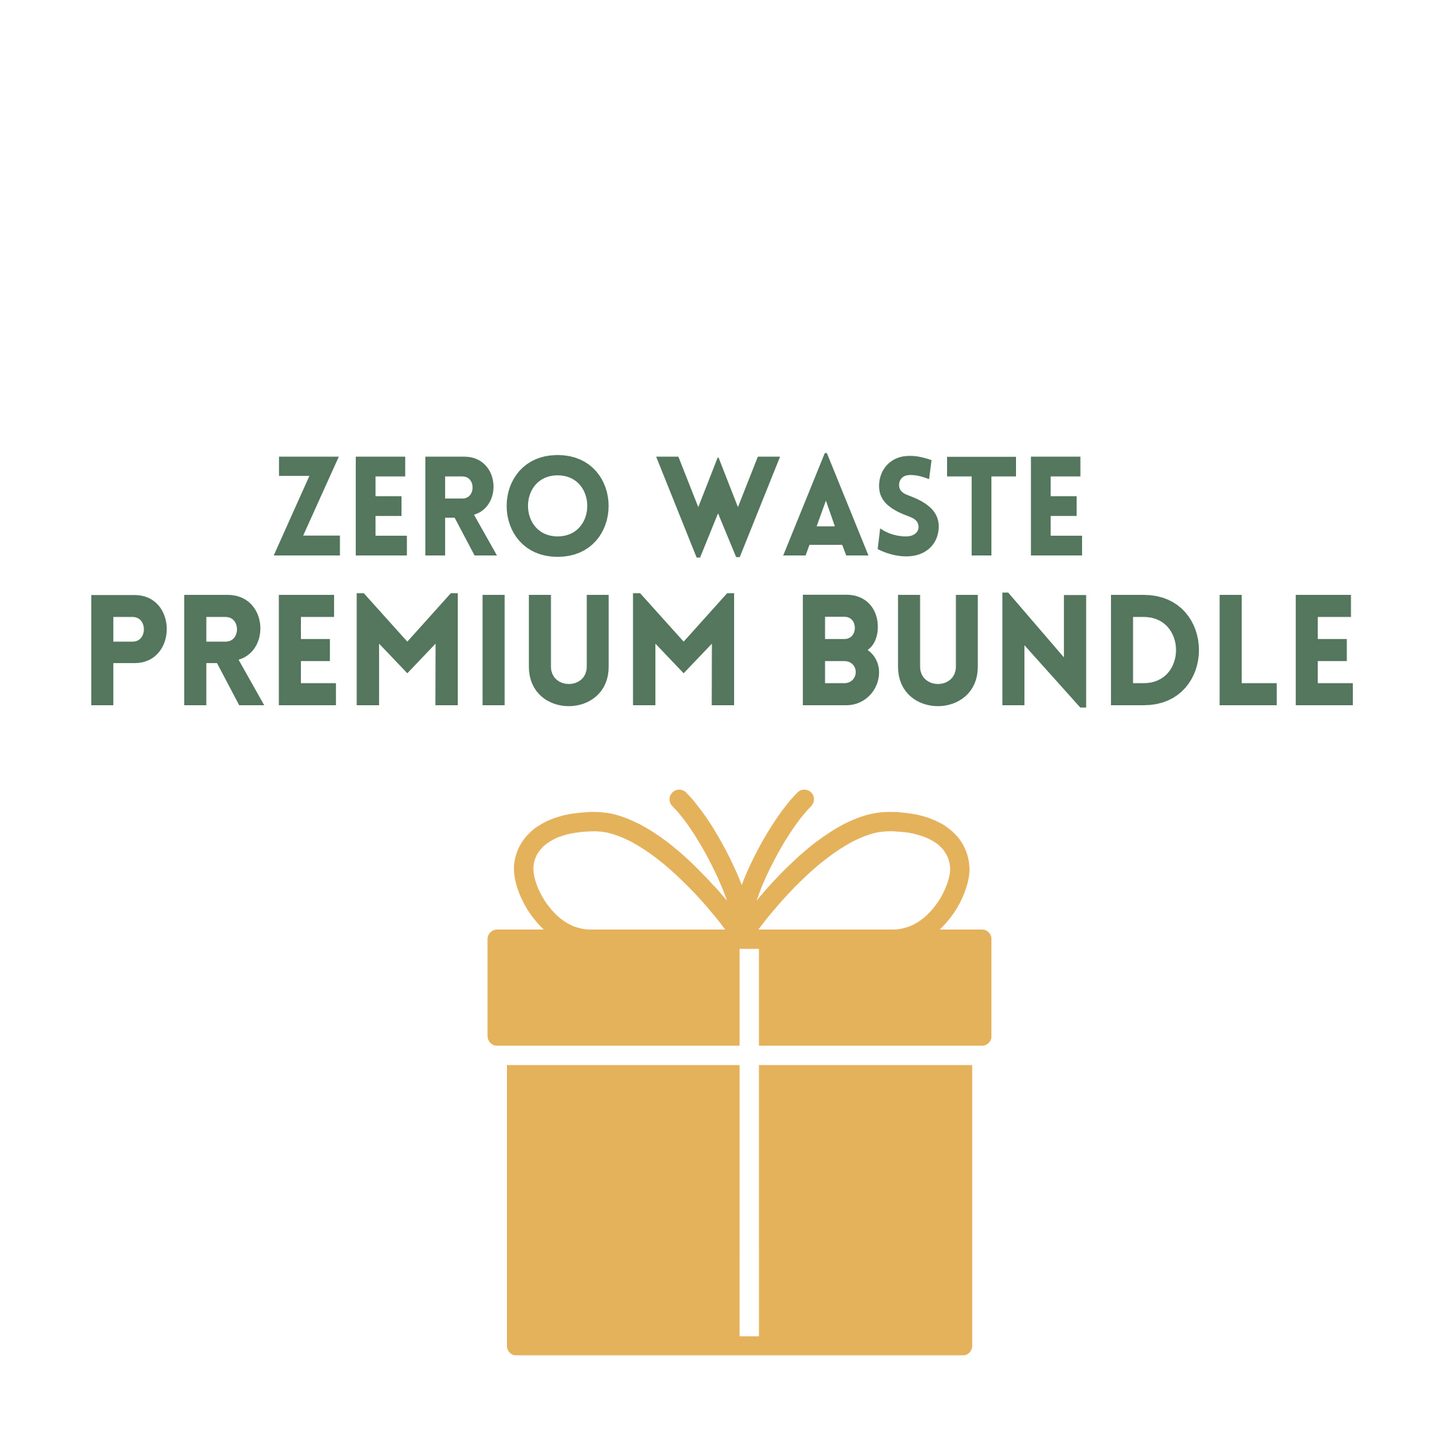 ZERO WASTE | PREMIUM BUNDLE